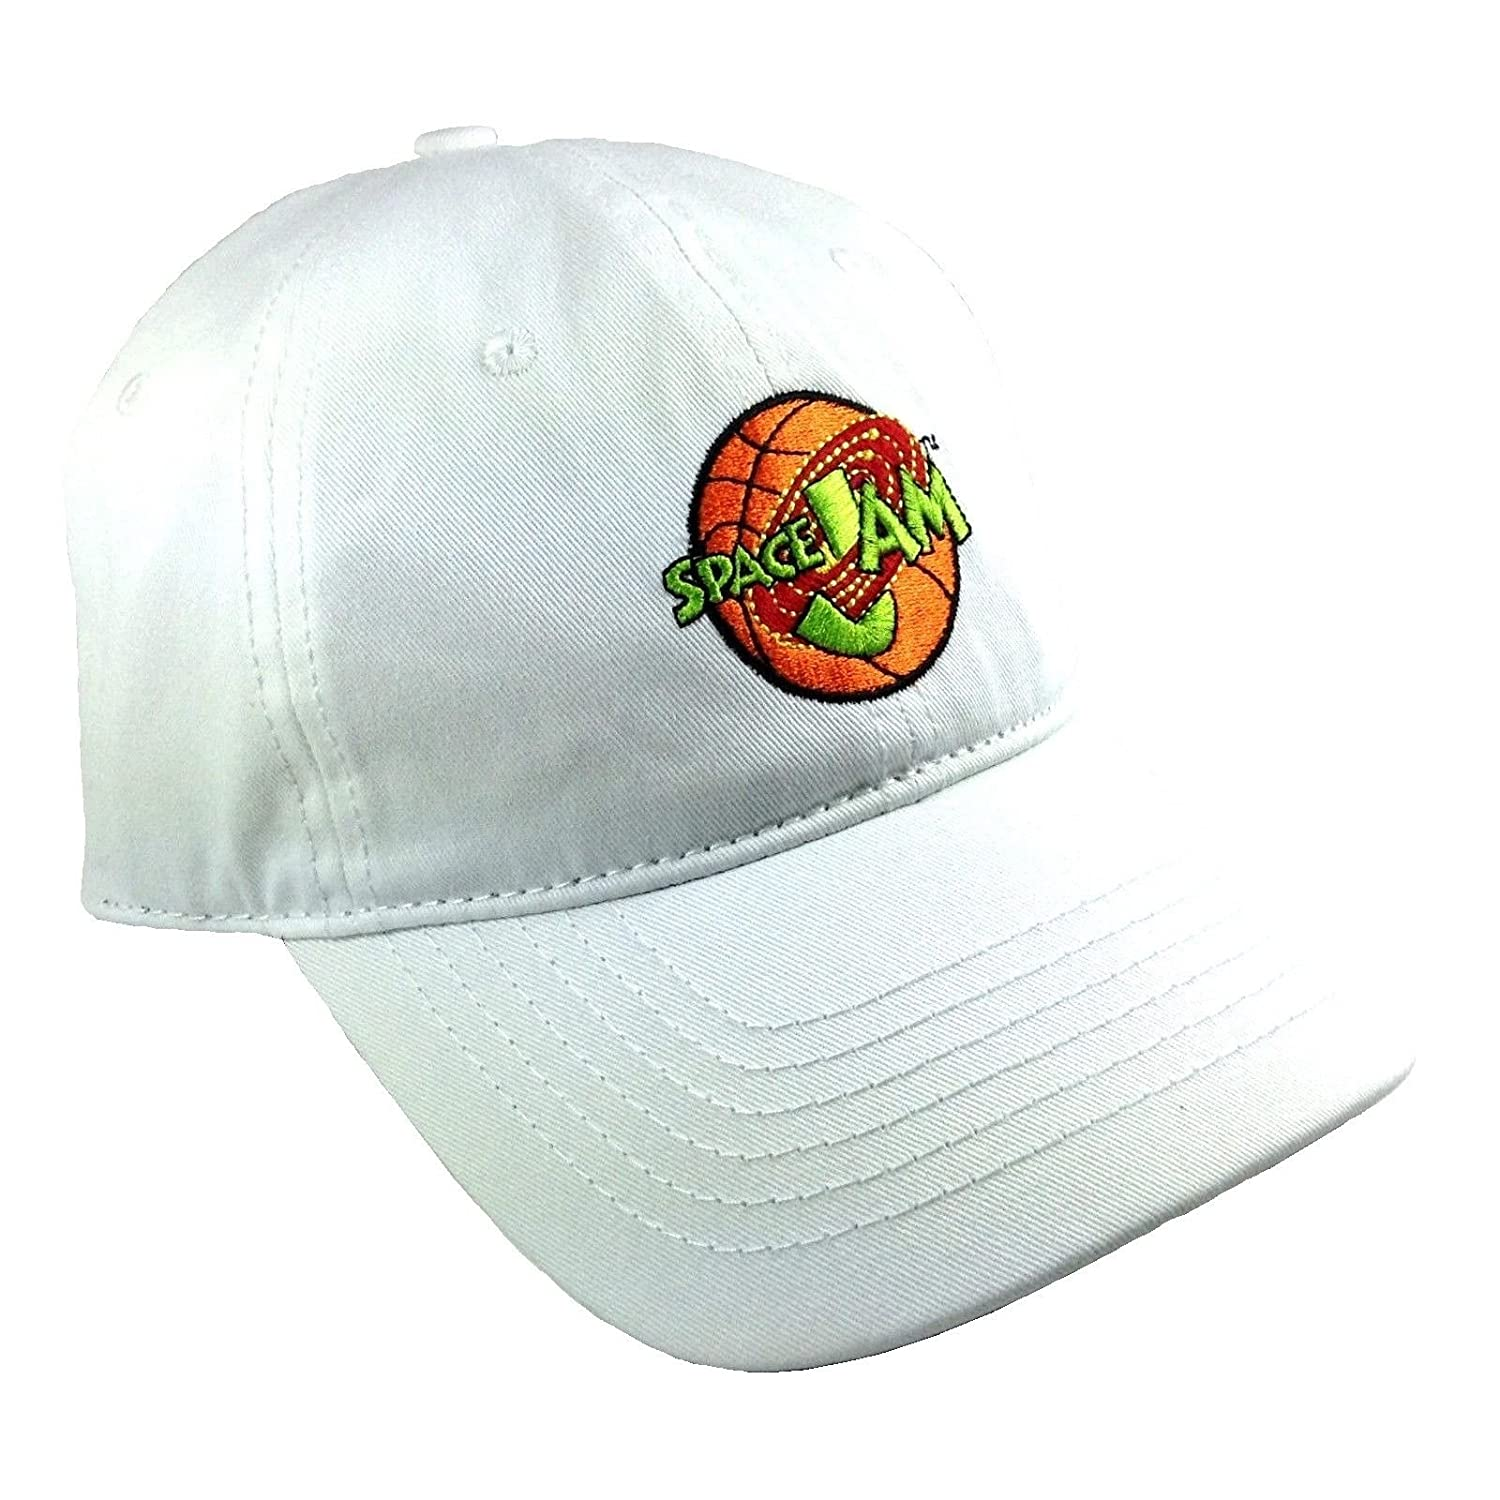 Amazon.com  White Space Jam Embroidered Logo Adjustable Dad Hat  Clothing 86a03bd55fa7